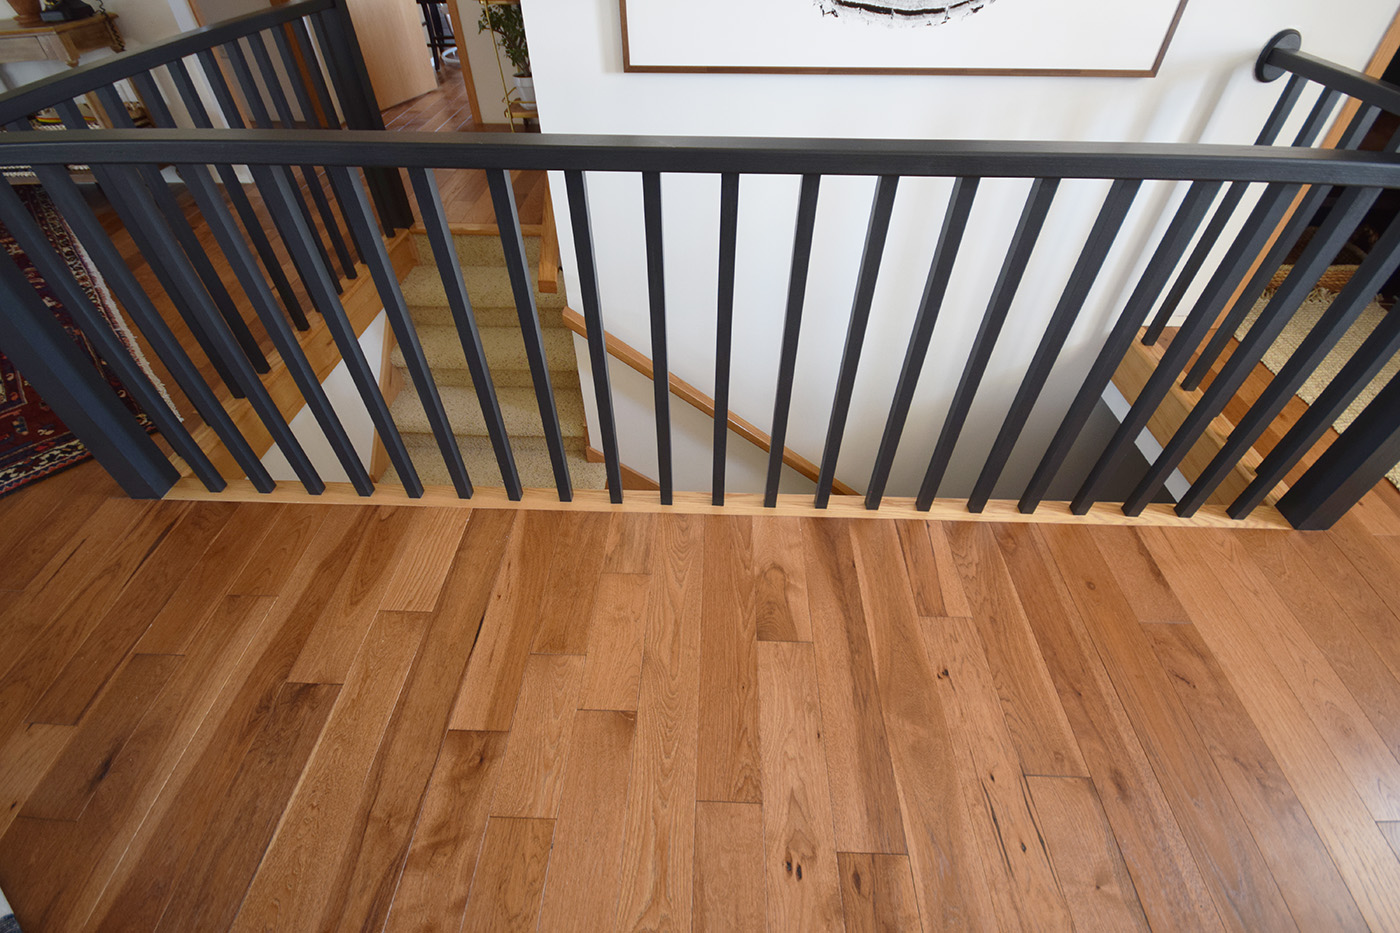 Hardwood Flooring Installation After stair banister transition